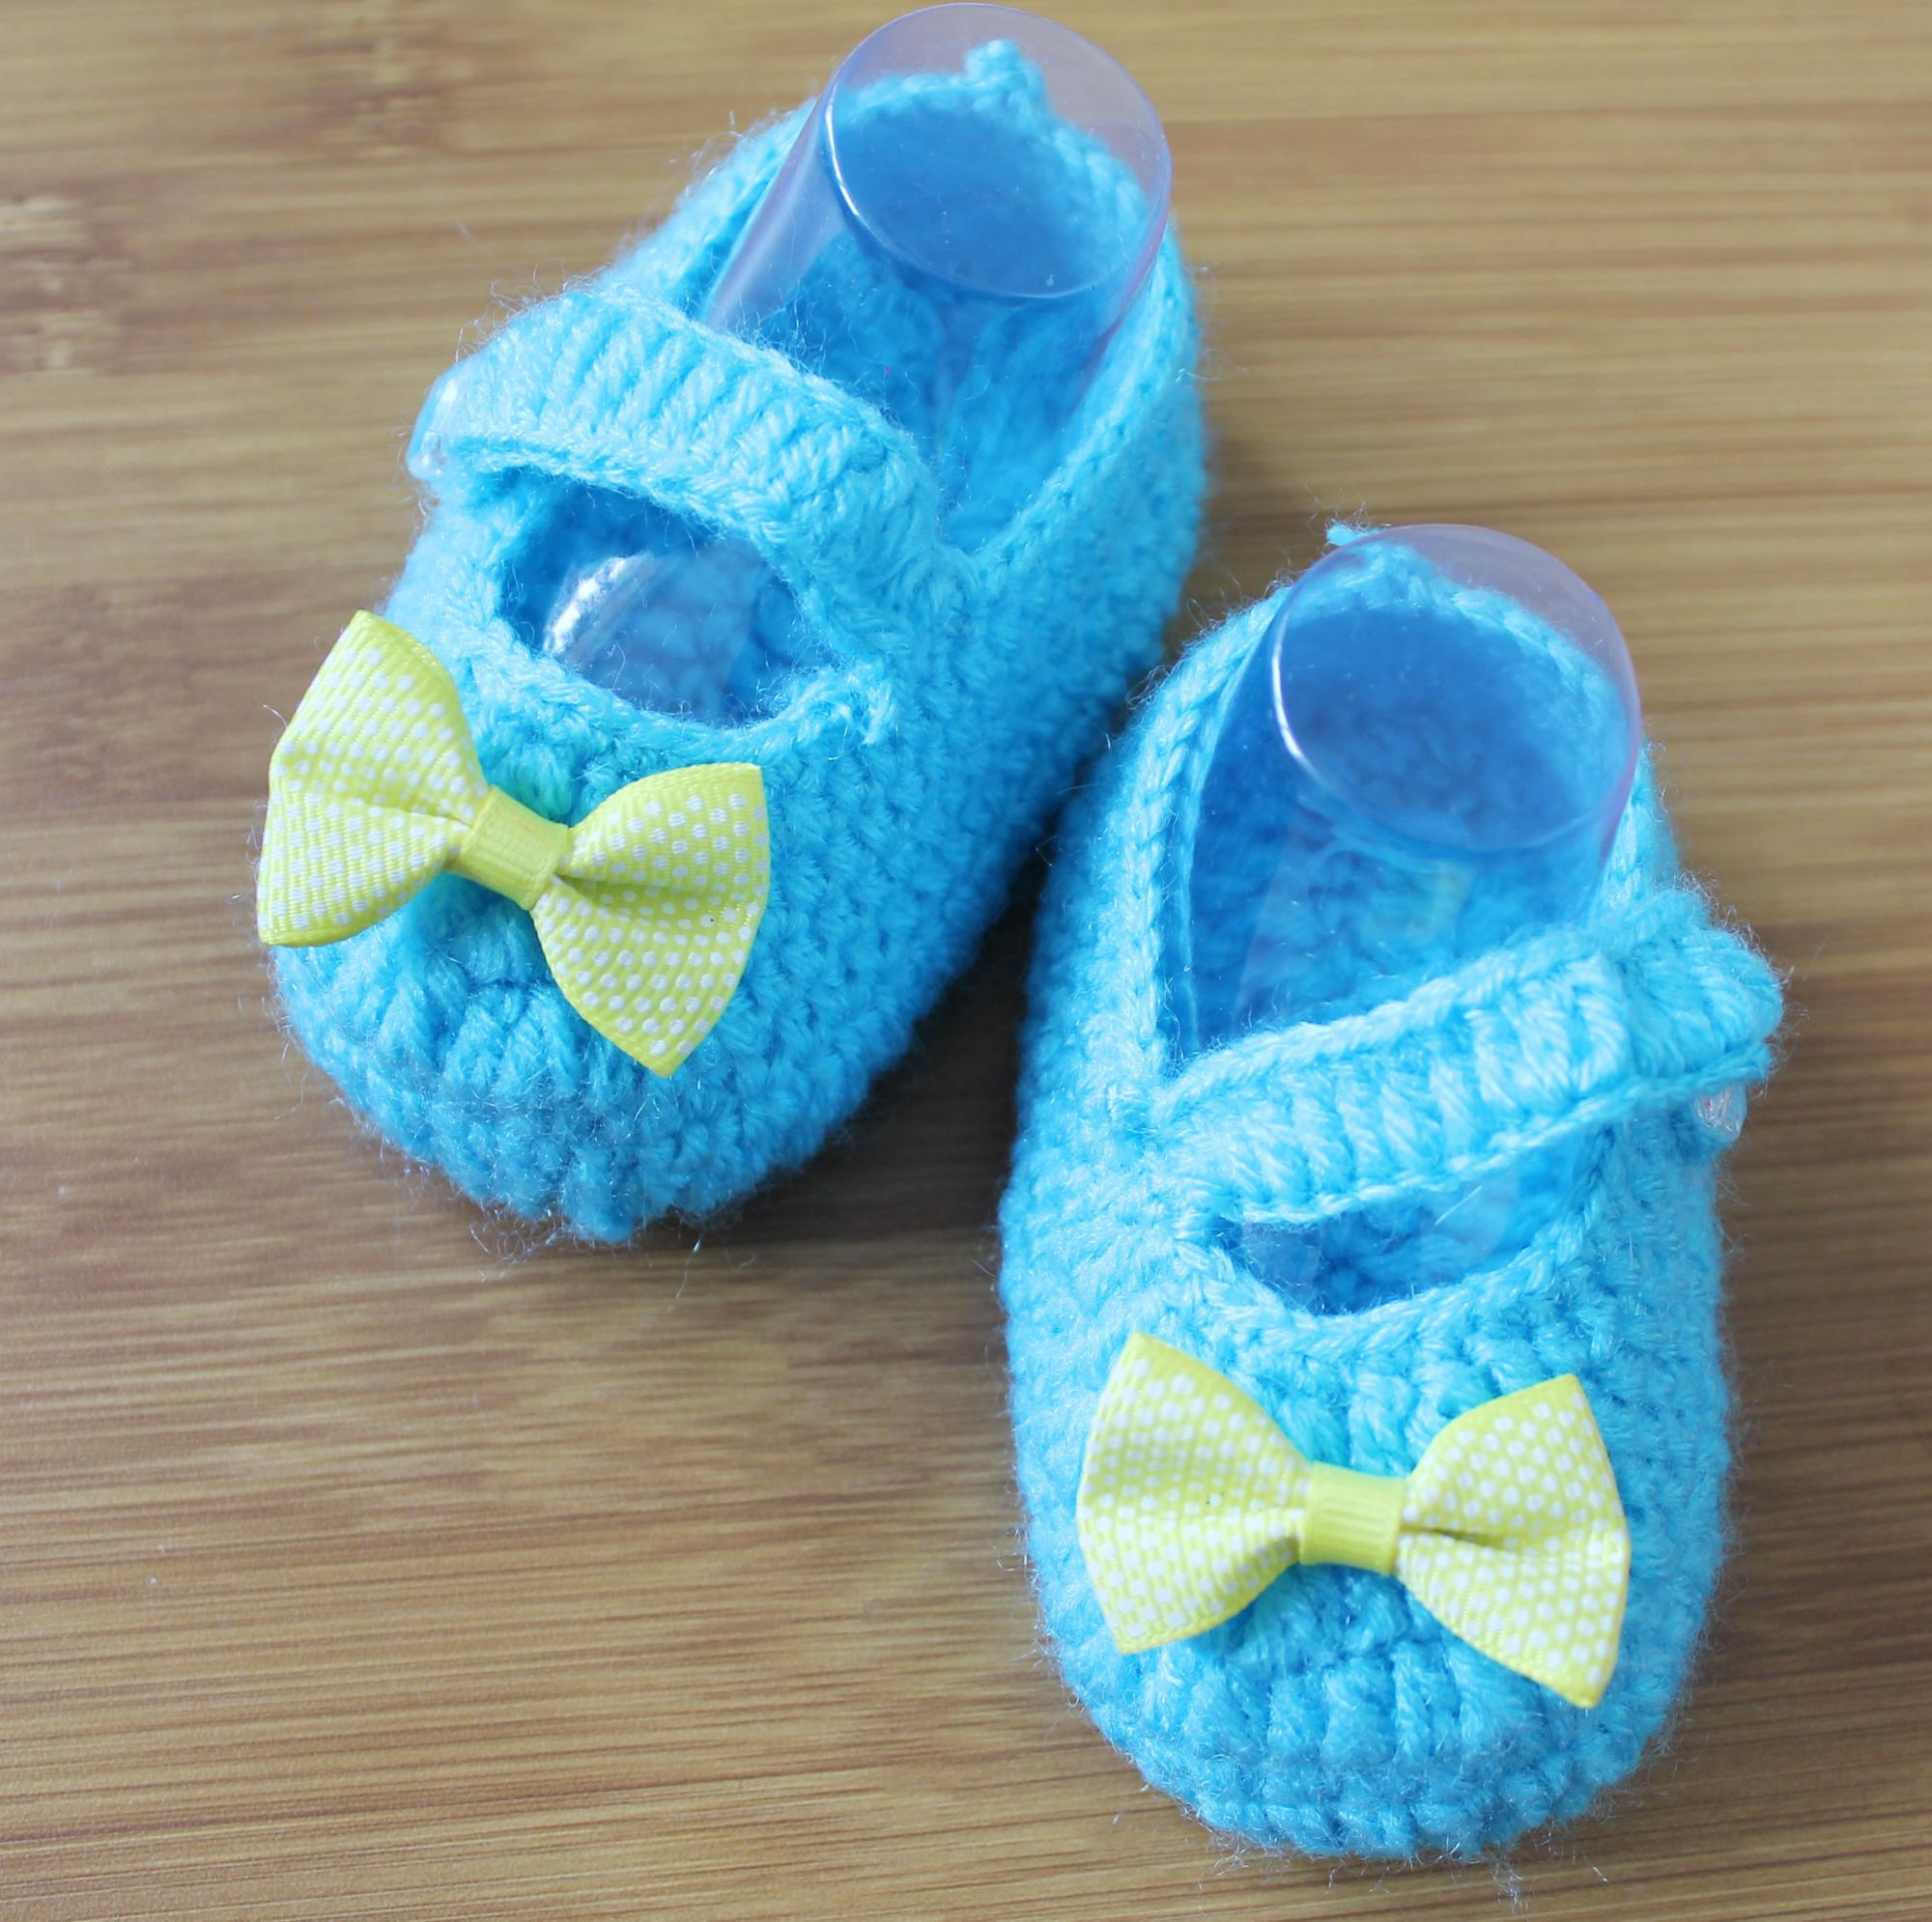 Woonie Handmade Blue Booties with Yellow Bow